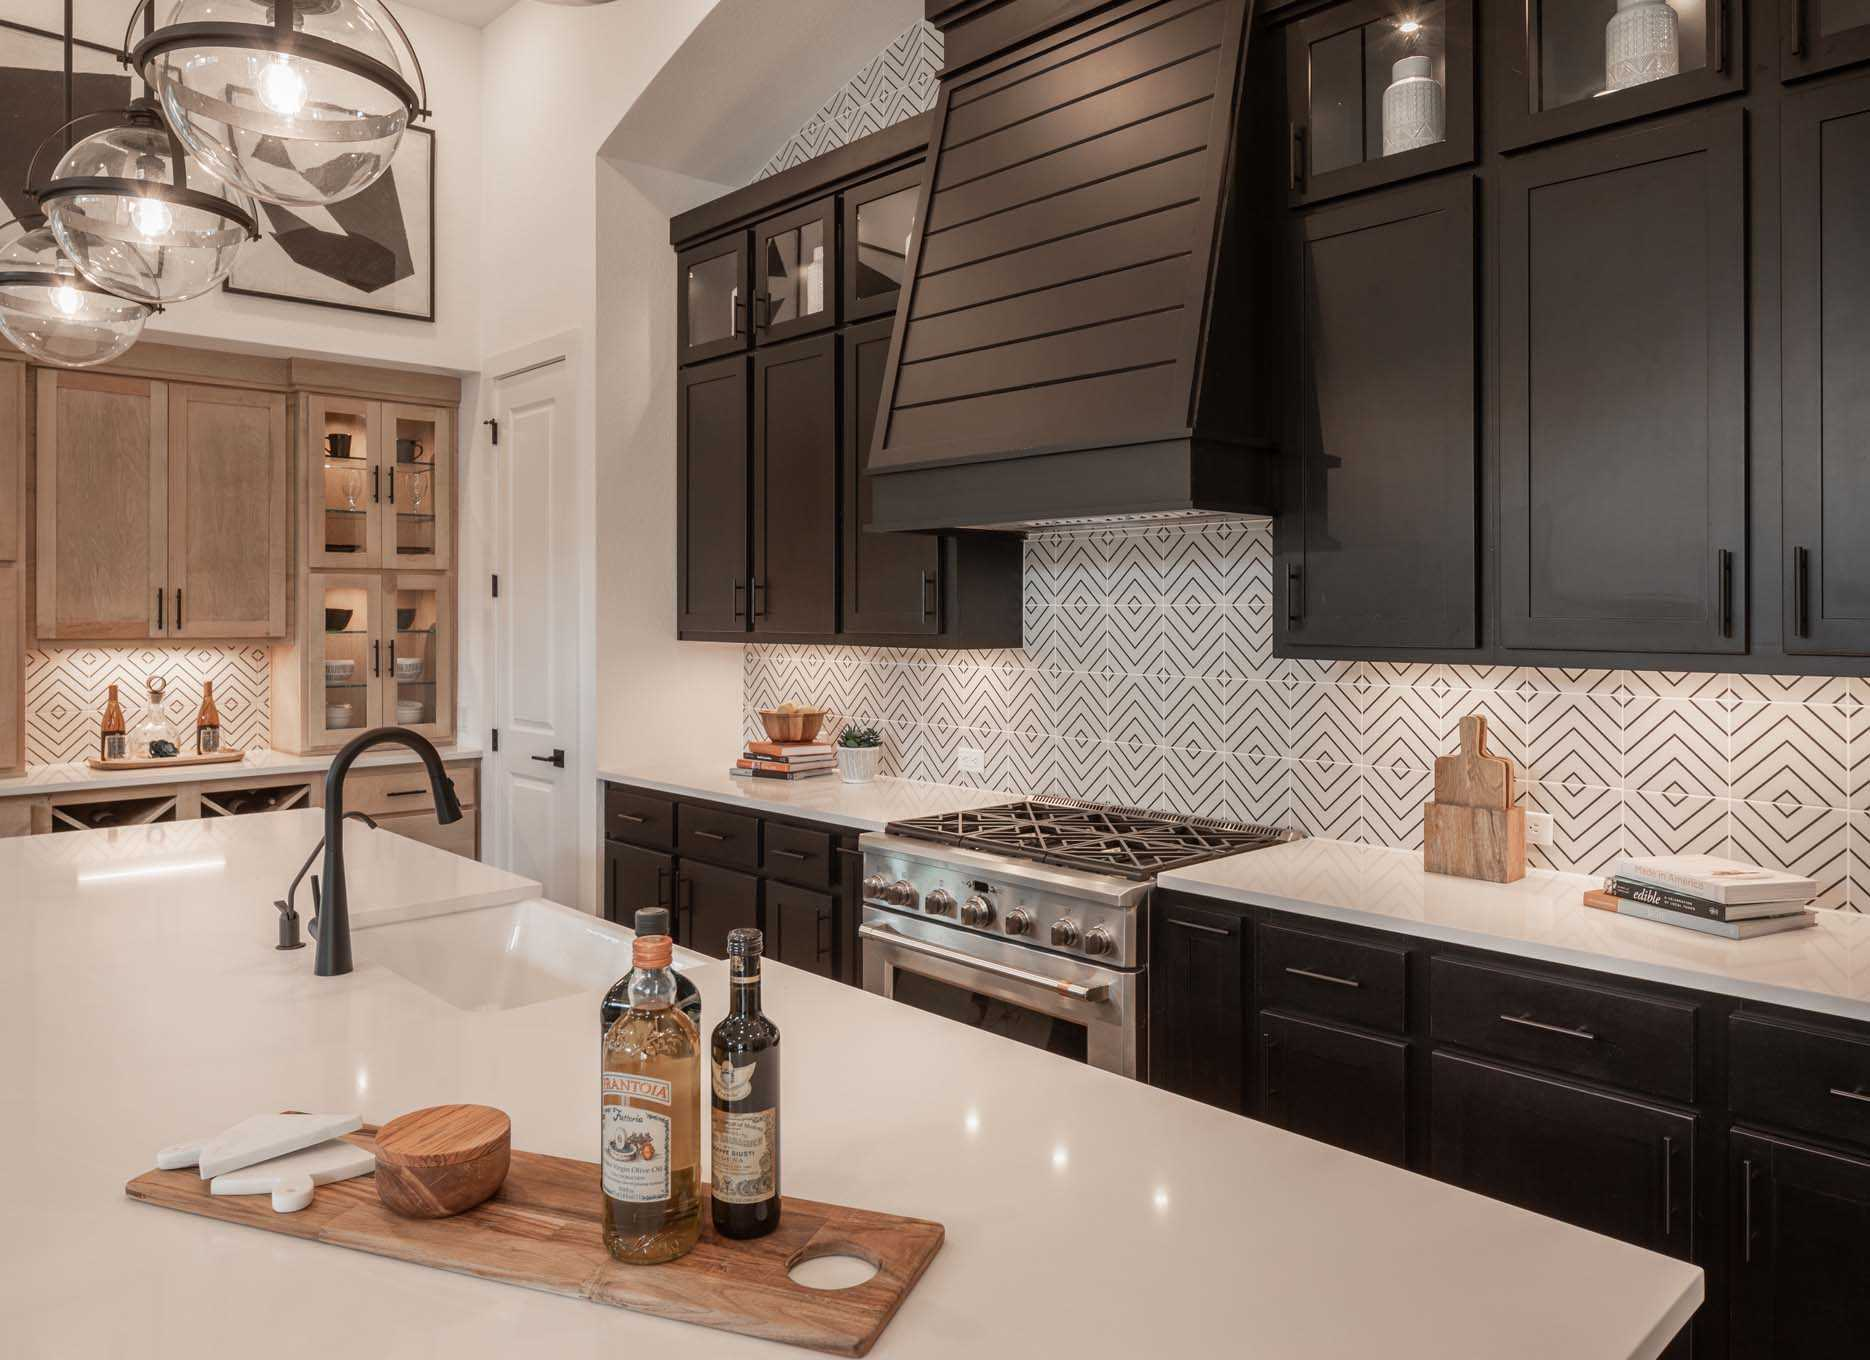 Kitchen featured in the Plan 215 By Highland Homes in Houston, TX